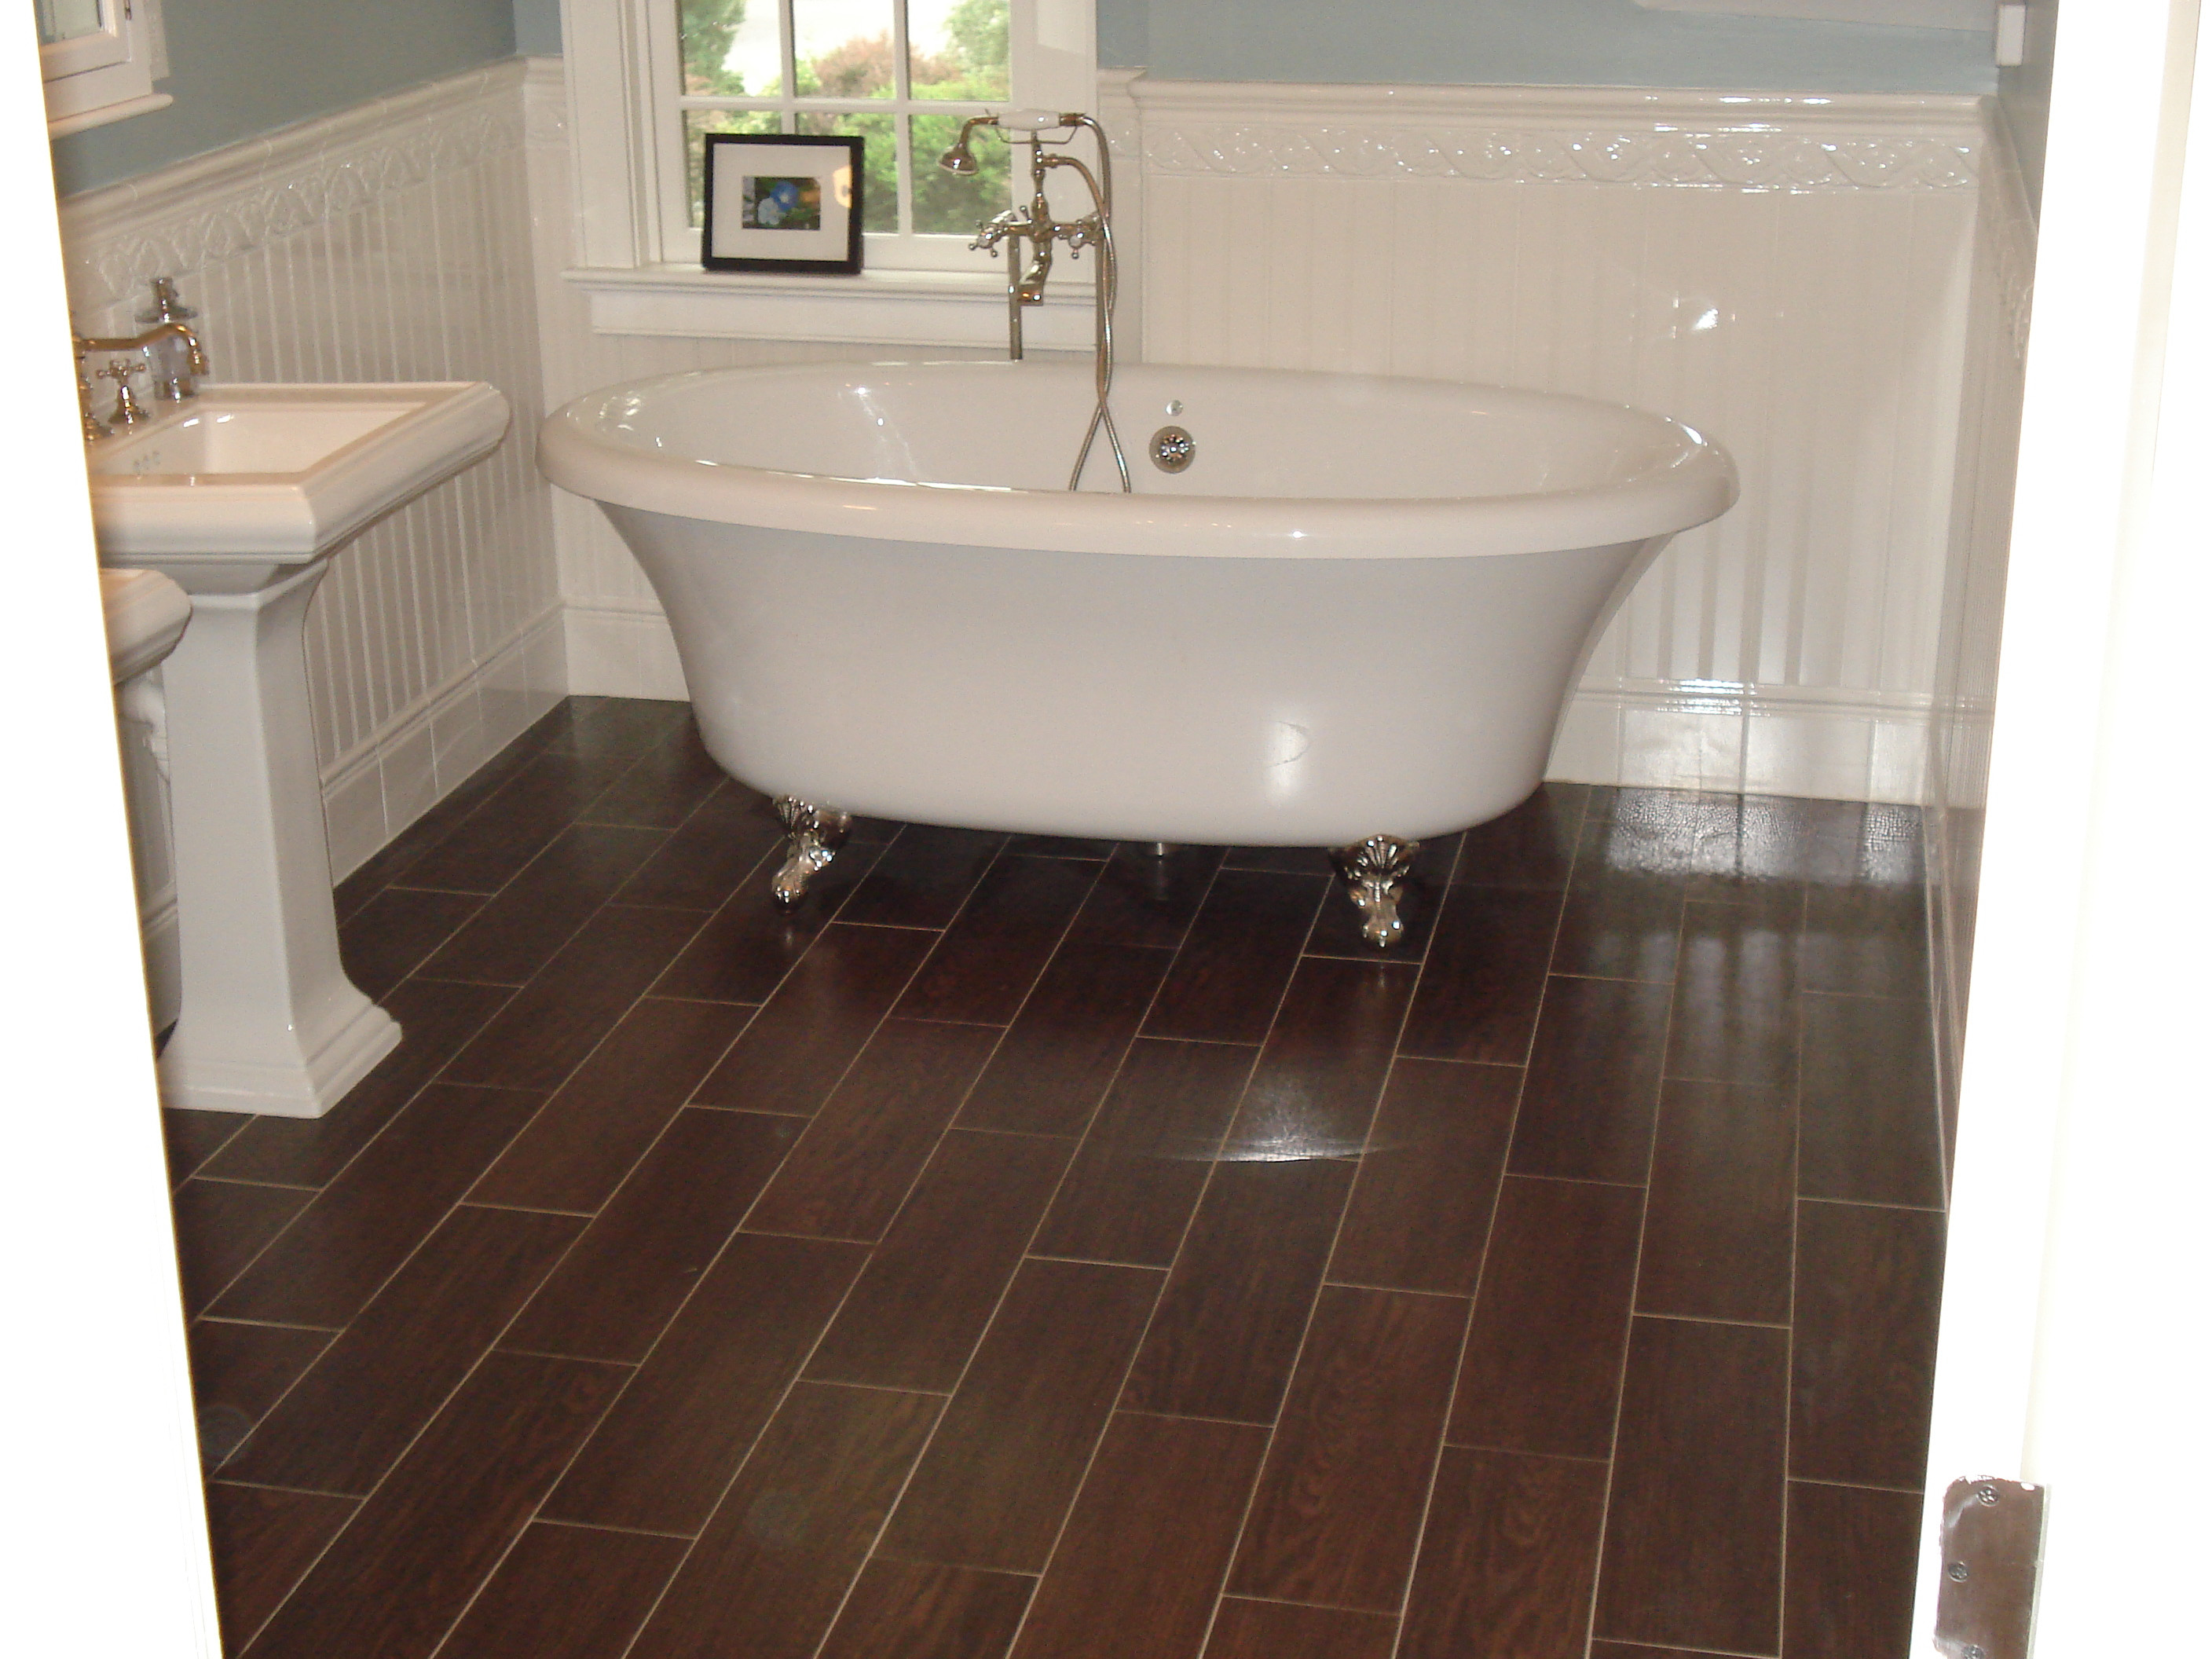 16 Spectacular Hardwood Floor Patterns Pictures 2021 free download hardwood floor patterns pictures of bathroom flooring ideas help to change bathroom looking the new pertaining to image of bathroom tile flooring ideas